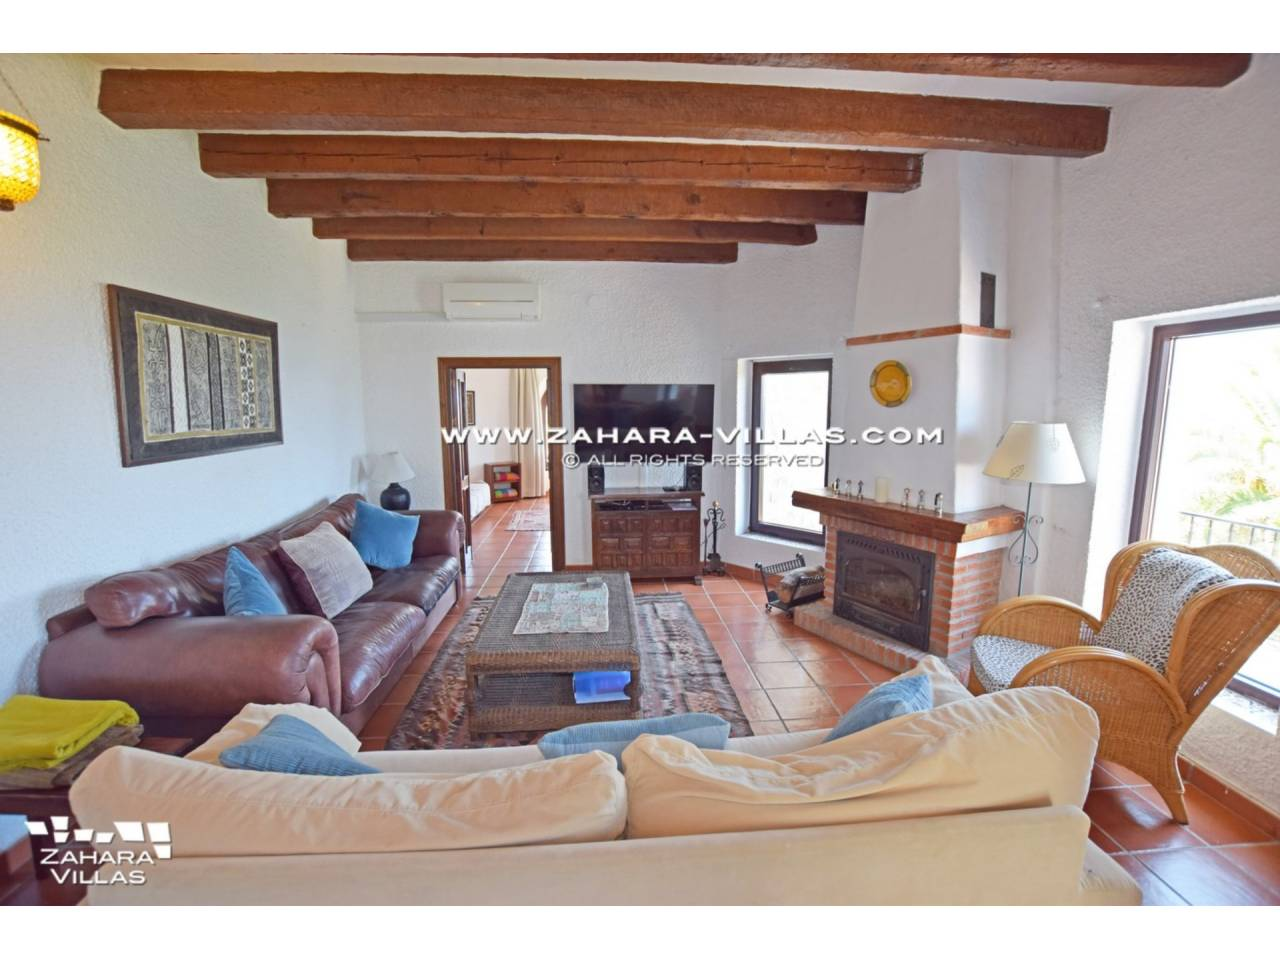 Imagen 30 de Wonderful Villa for sale in Atlanterra-Zahara de los Atunes